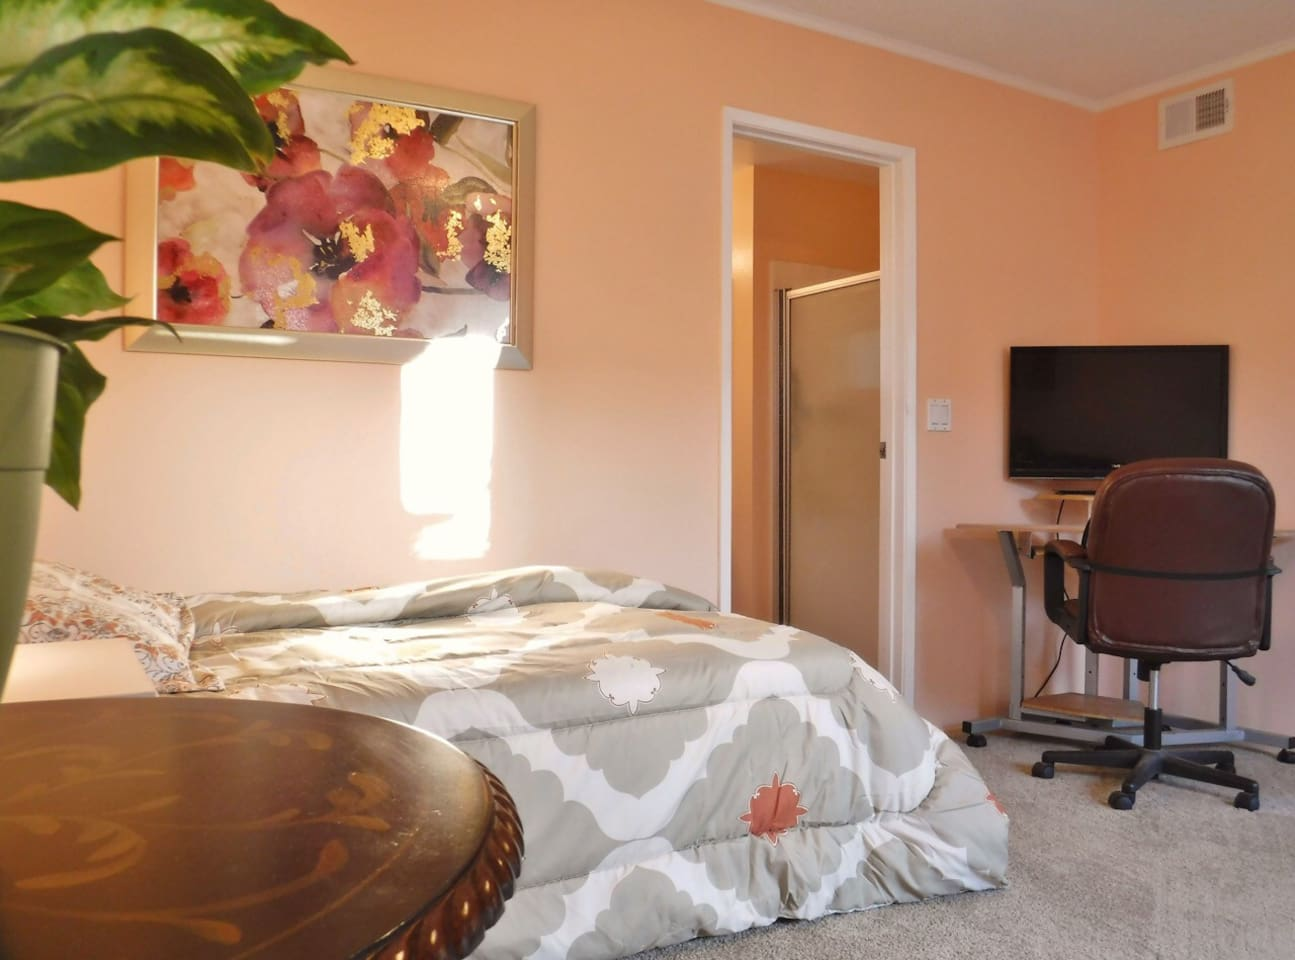 Tempurpedic queen size bed and the office space with a desk and a comfortable chair.